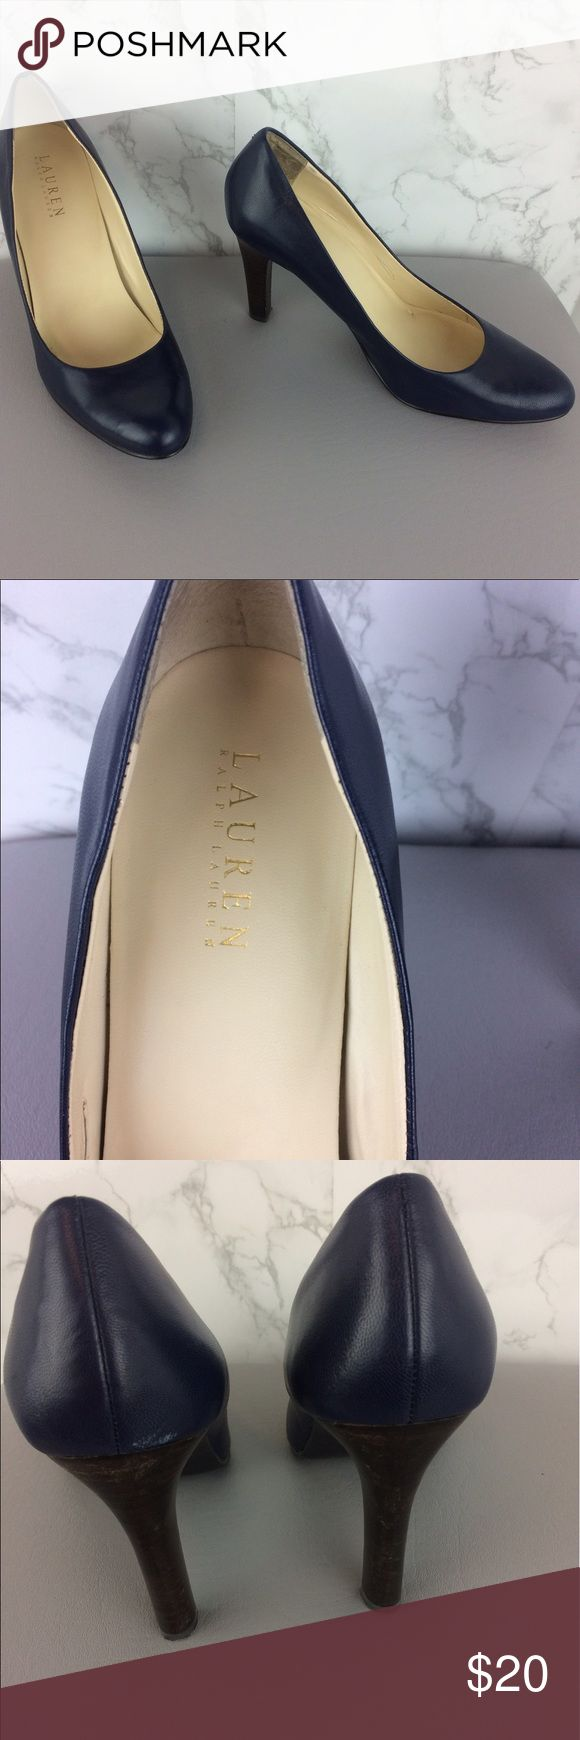 """LAUREN RALPH LAUREN Navy Classic Pumps Size 9 LAUREN RALPH LAUREN Heels. Navy Classic Pumps.  Leather upper.  Great used condition.  Scuff on back heel that polish should cover.  Please refer to pictures for condition. 4"""" Heels.  Size 9. Lauren Ralph Lauren Shoes Heels"""